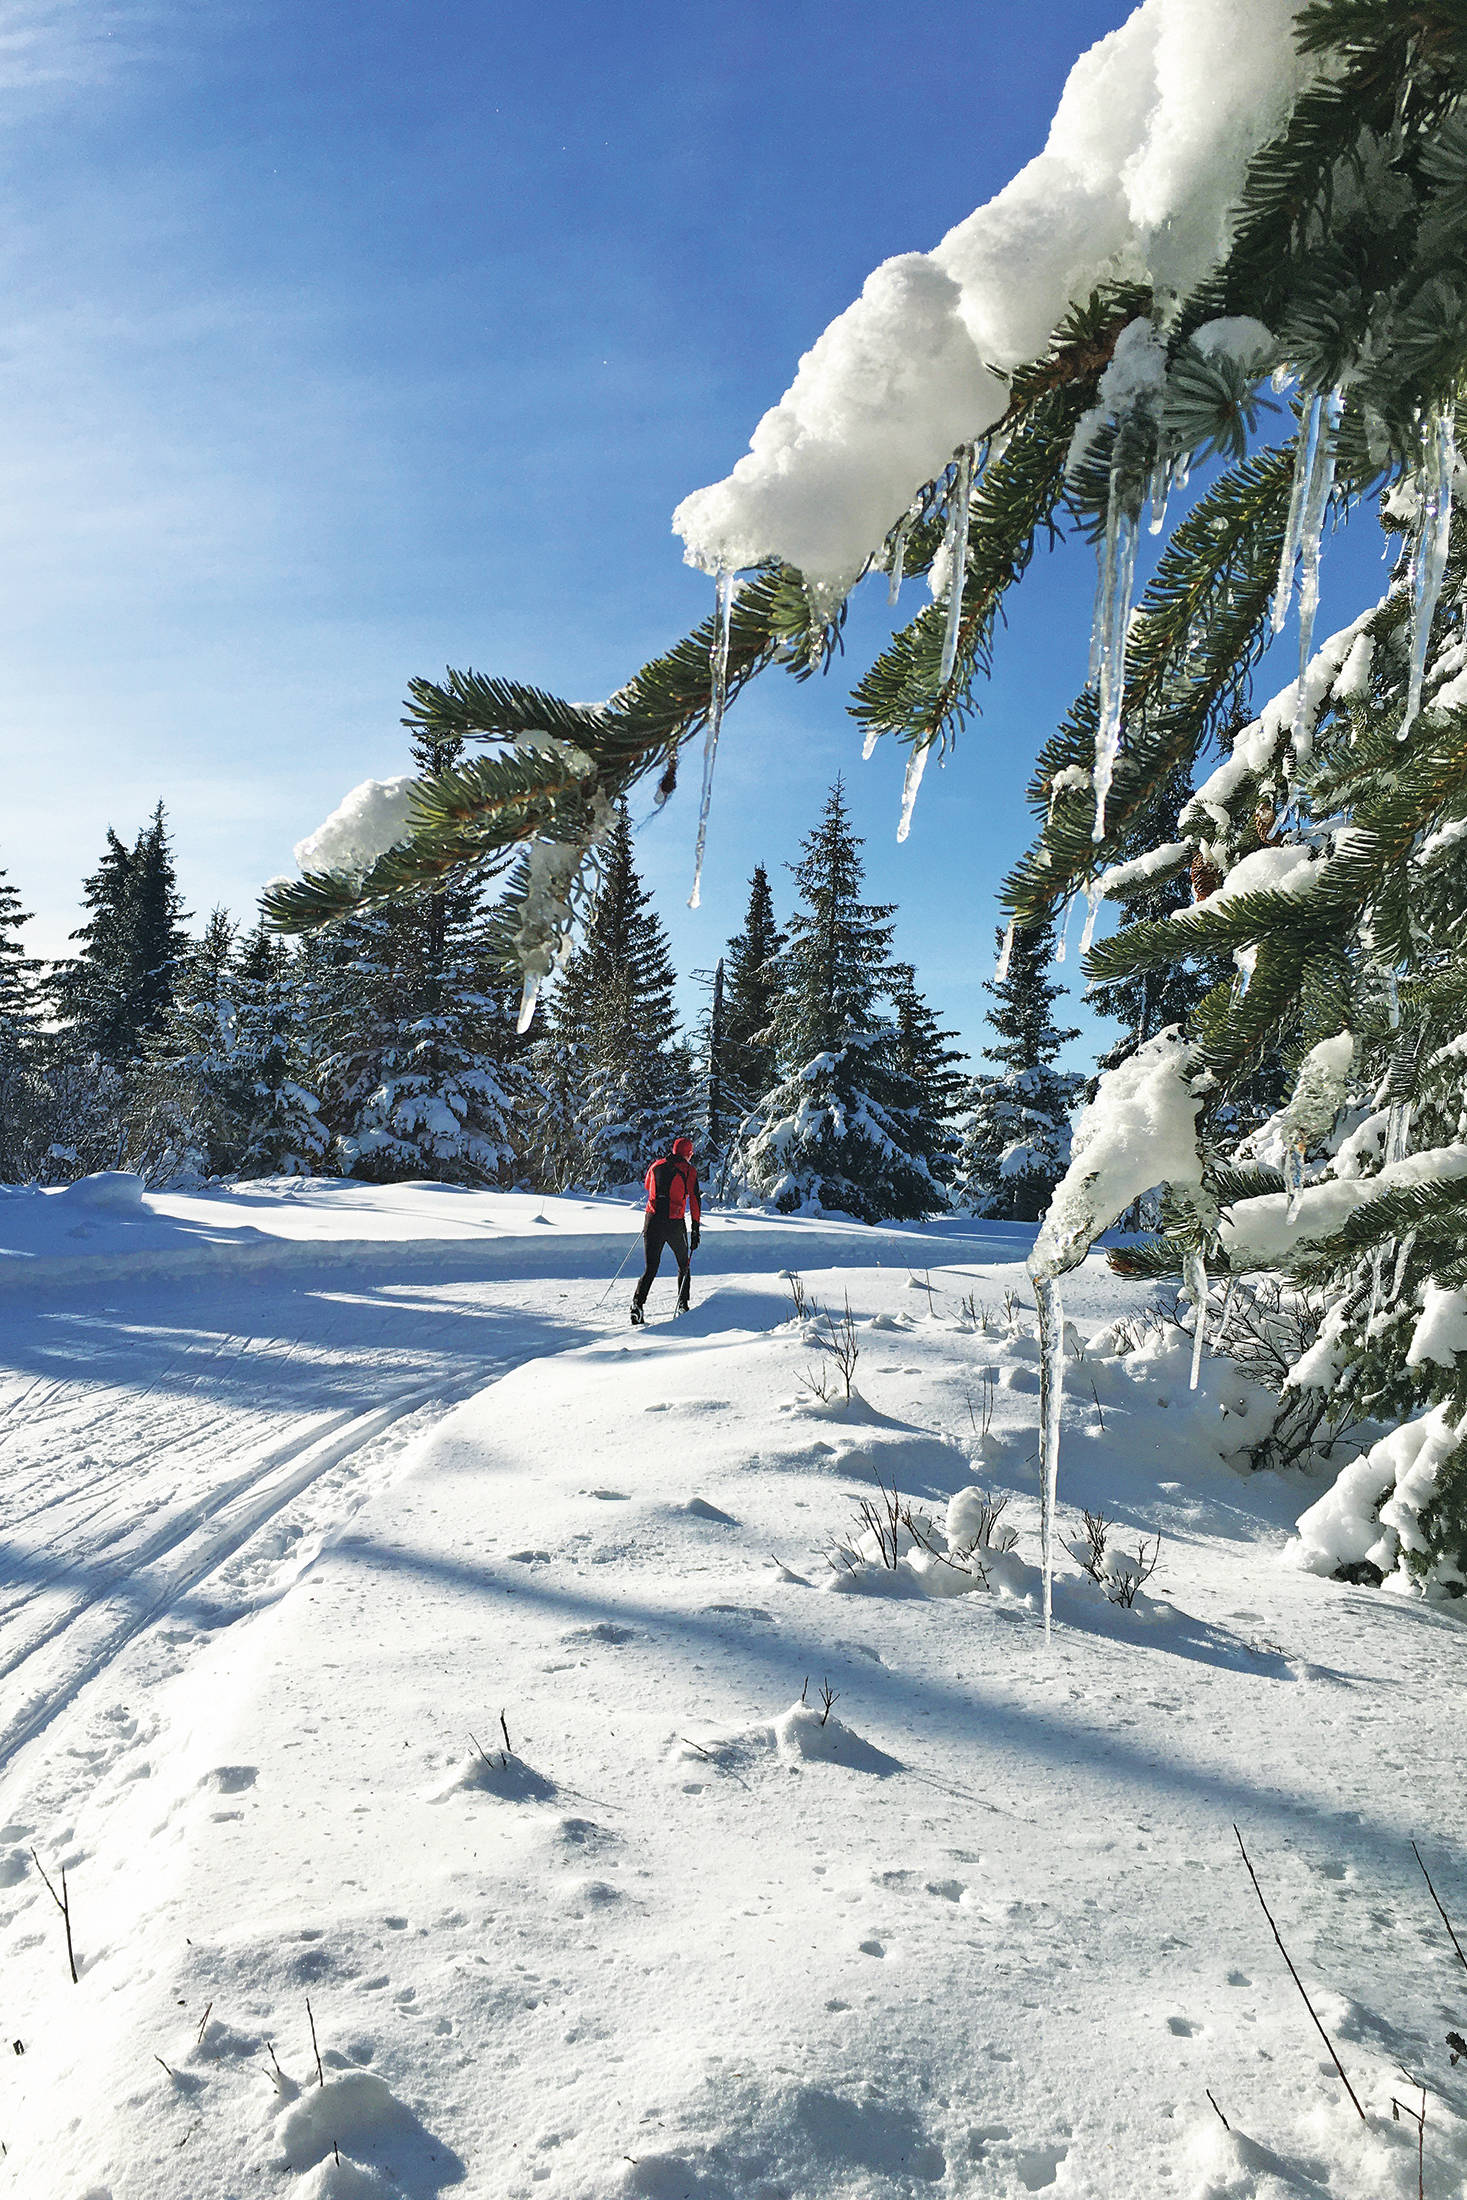 A skier enjoys the trails on the Hayfield Loop at the Lookout Mountain Trails on Monday, Feb. 24, 2020 on Ohlson Mountain Road near Homer, Alaska. (Photo by Megan Pacer/Homer News)